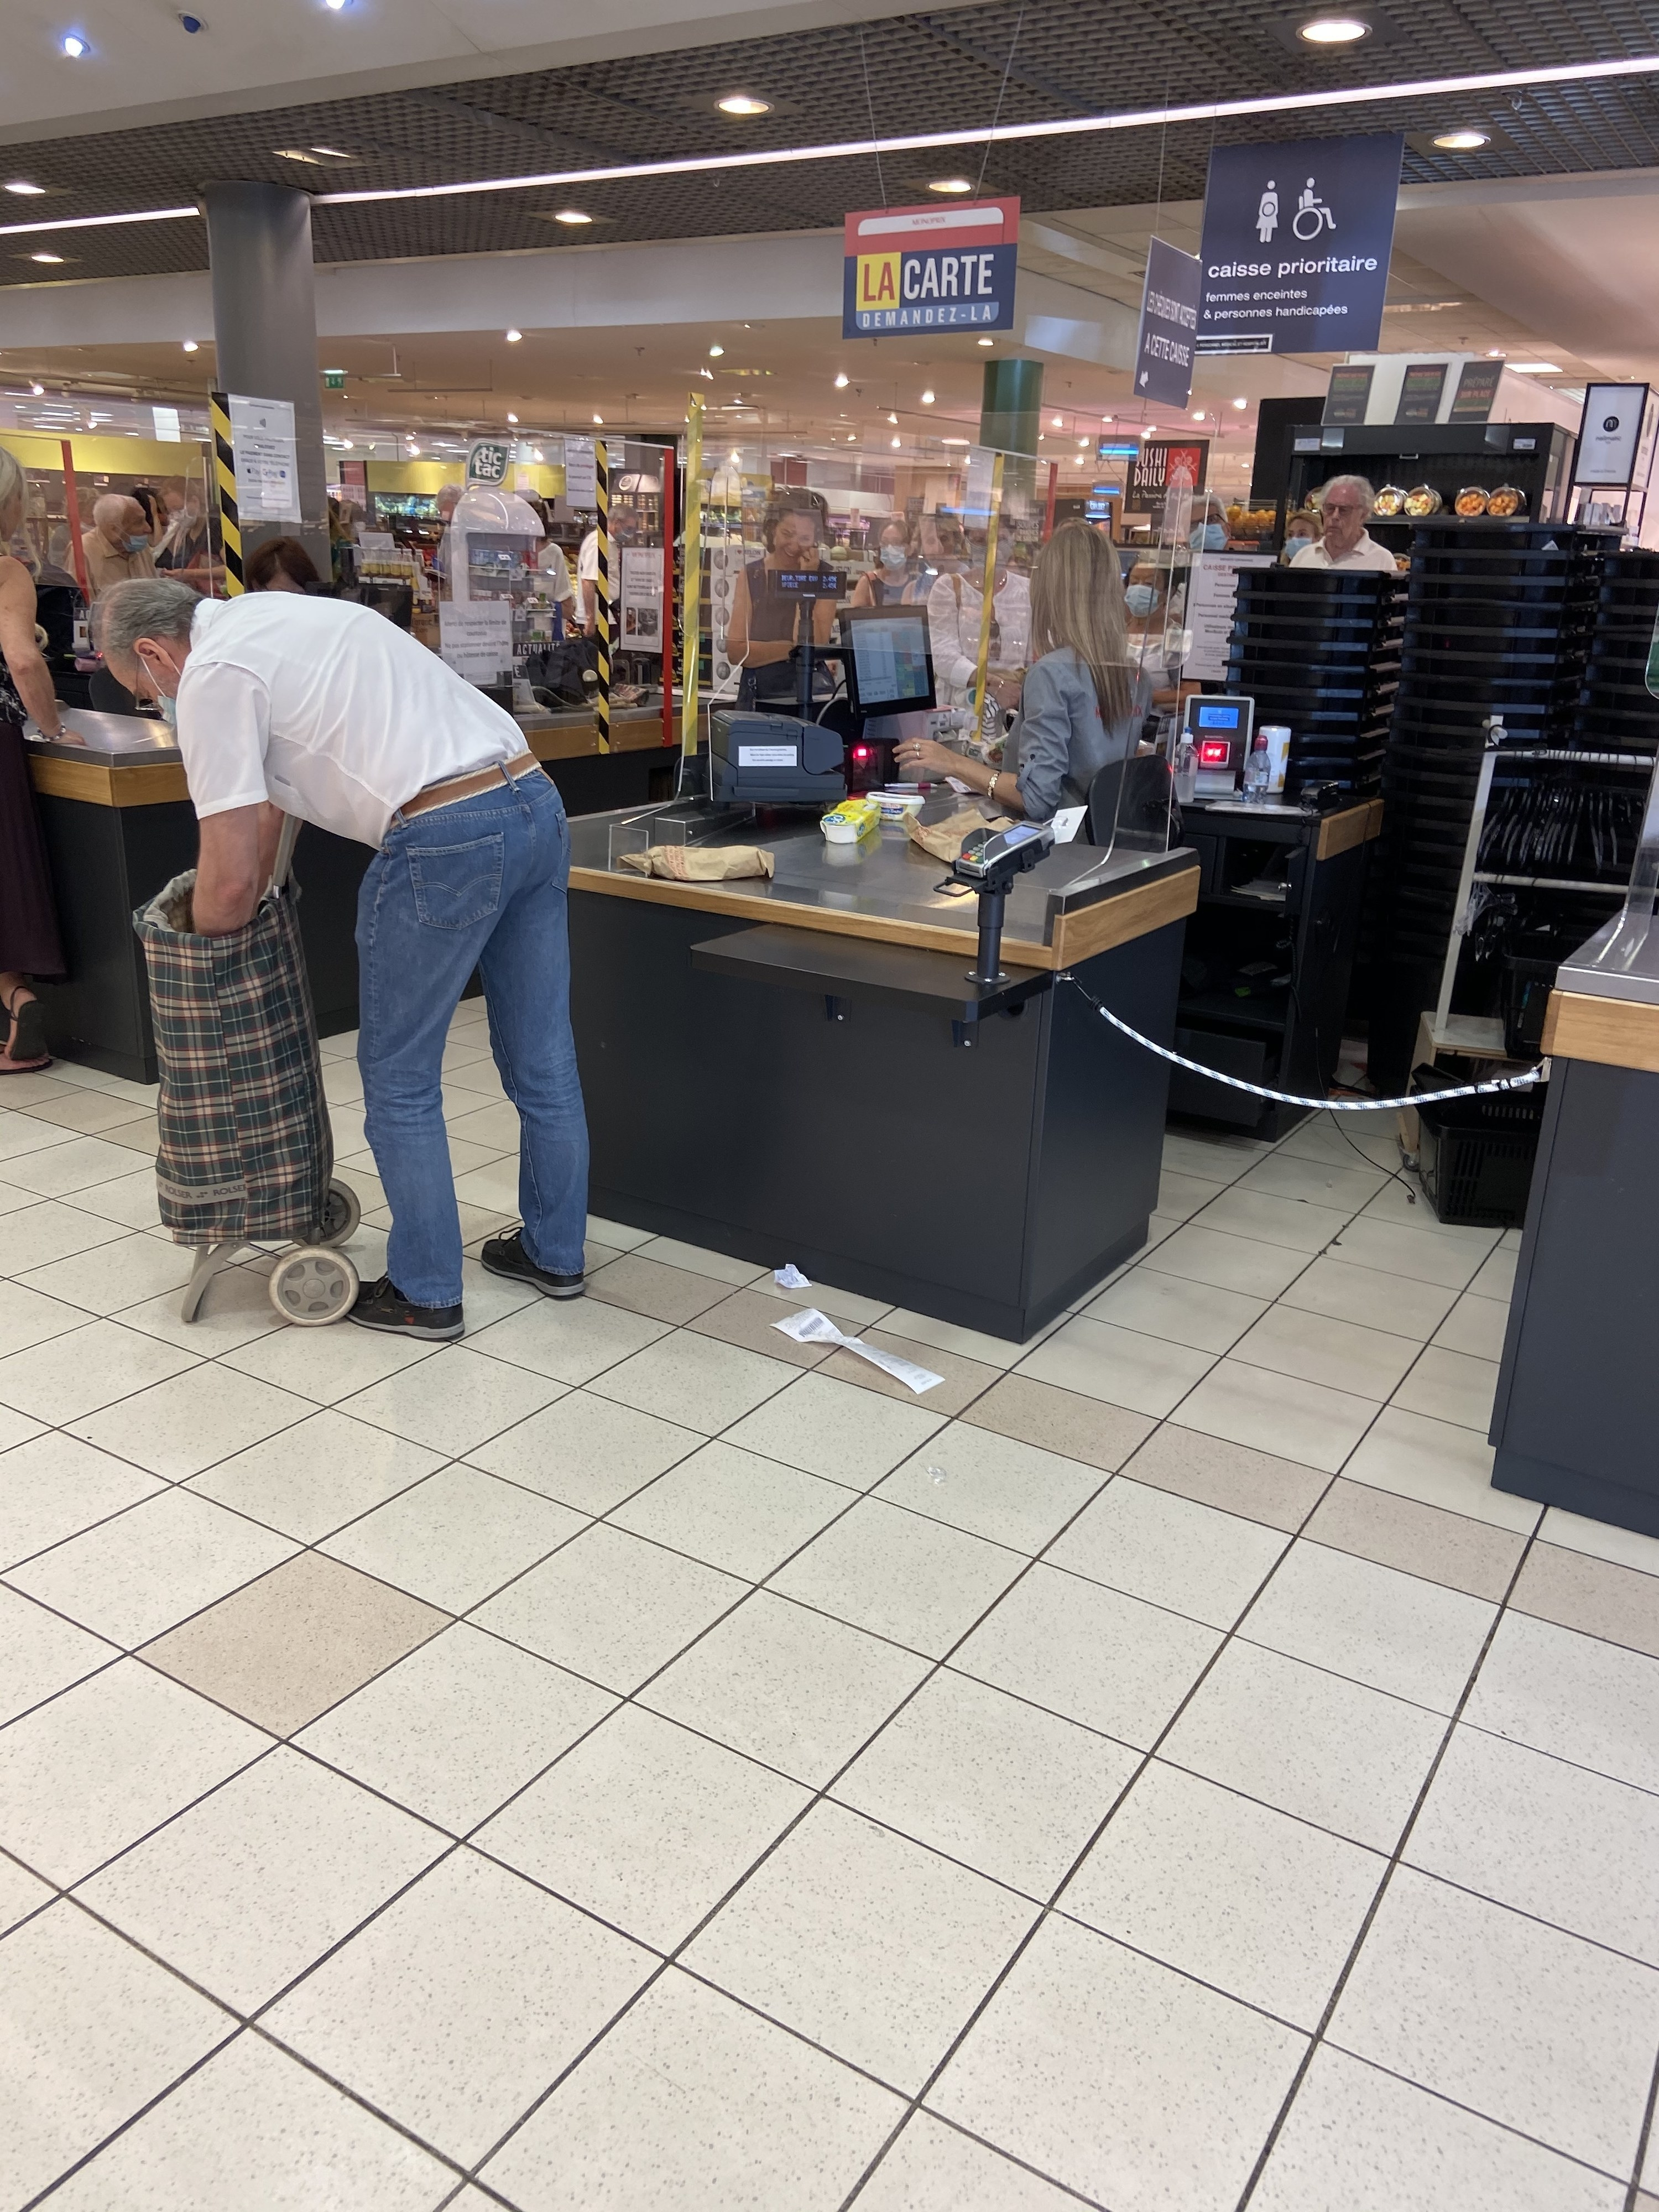 A man bagging his groceries at a supermarket in France